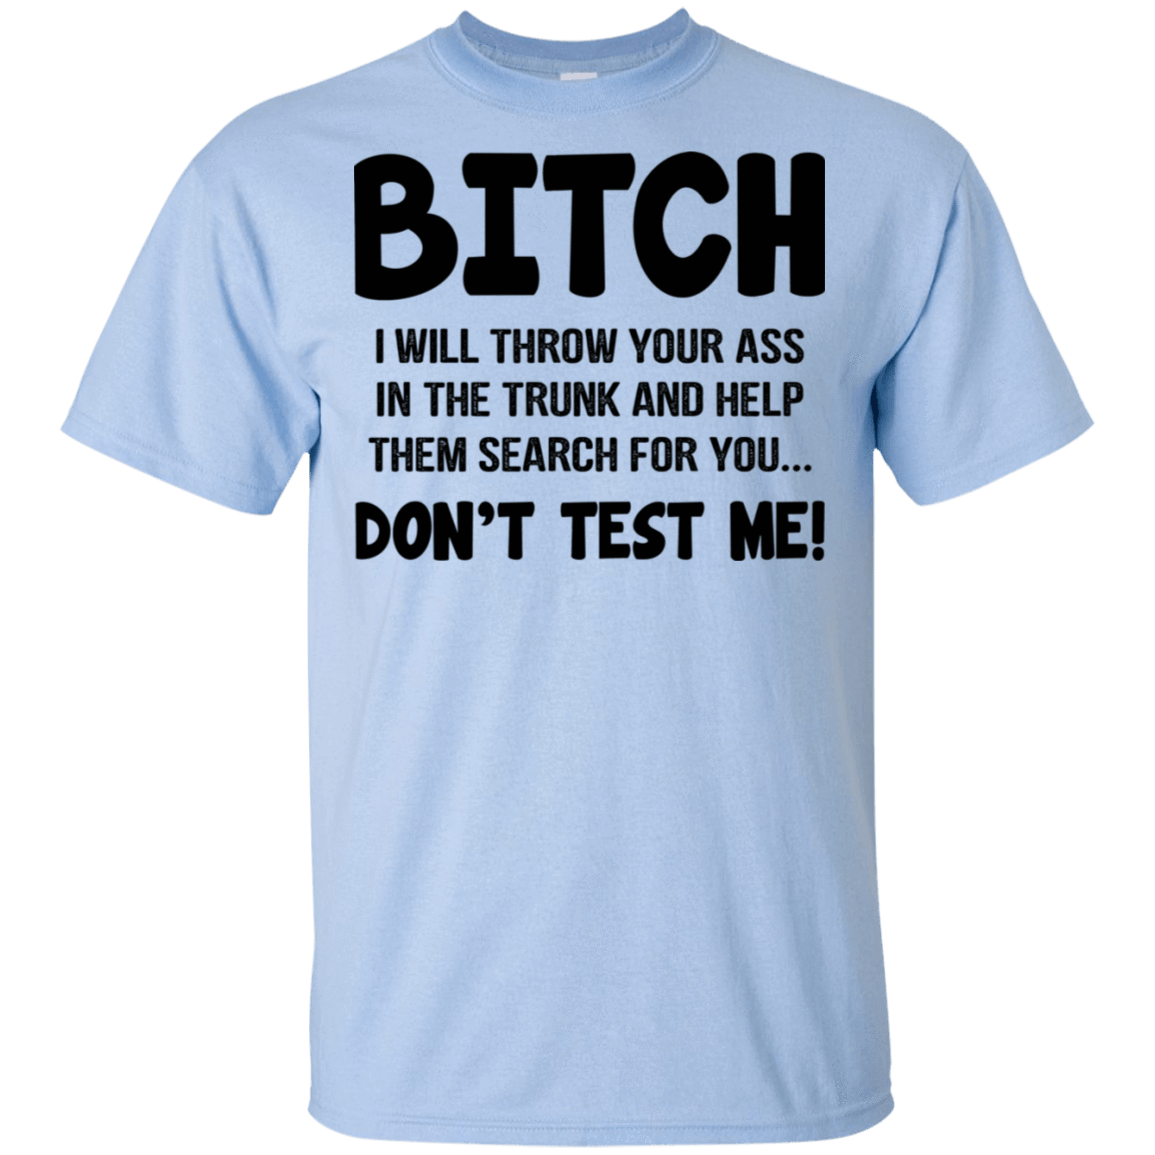 Bitch I Will Throw Your Ass In The Trunk And Help Them Search For You … Don't Test Me T-Shirts, Hoodie, Tank 22-9800-78811045-47430 - Tee Ript